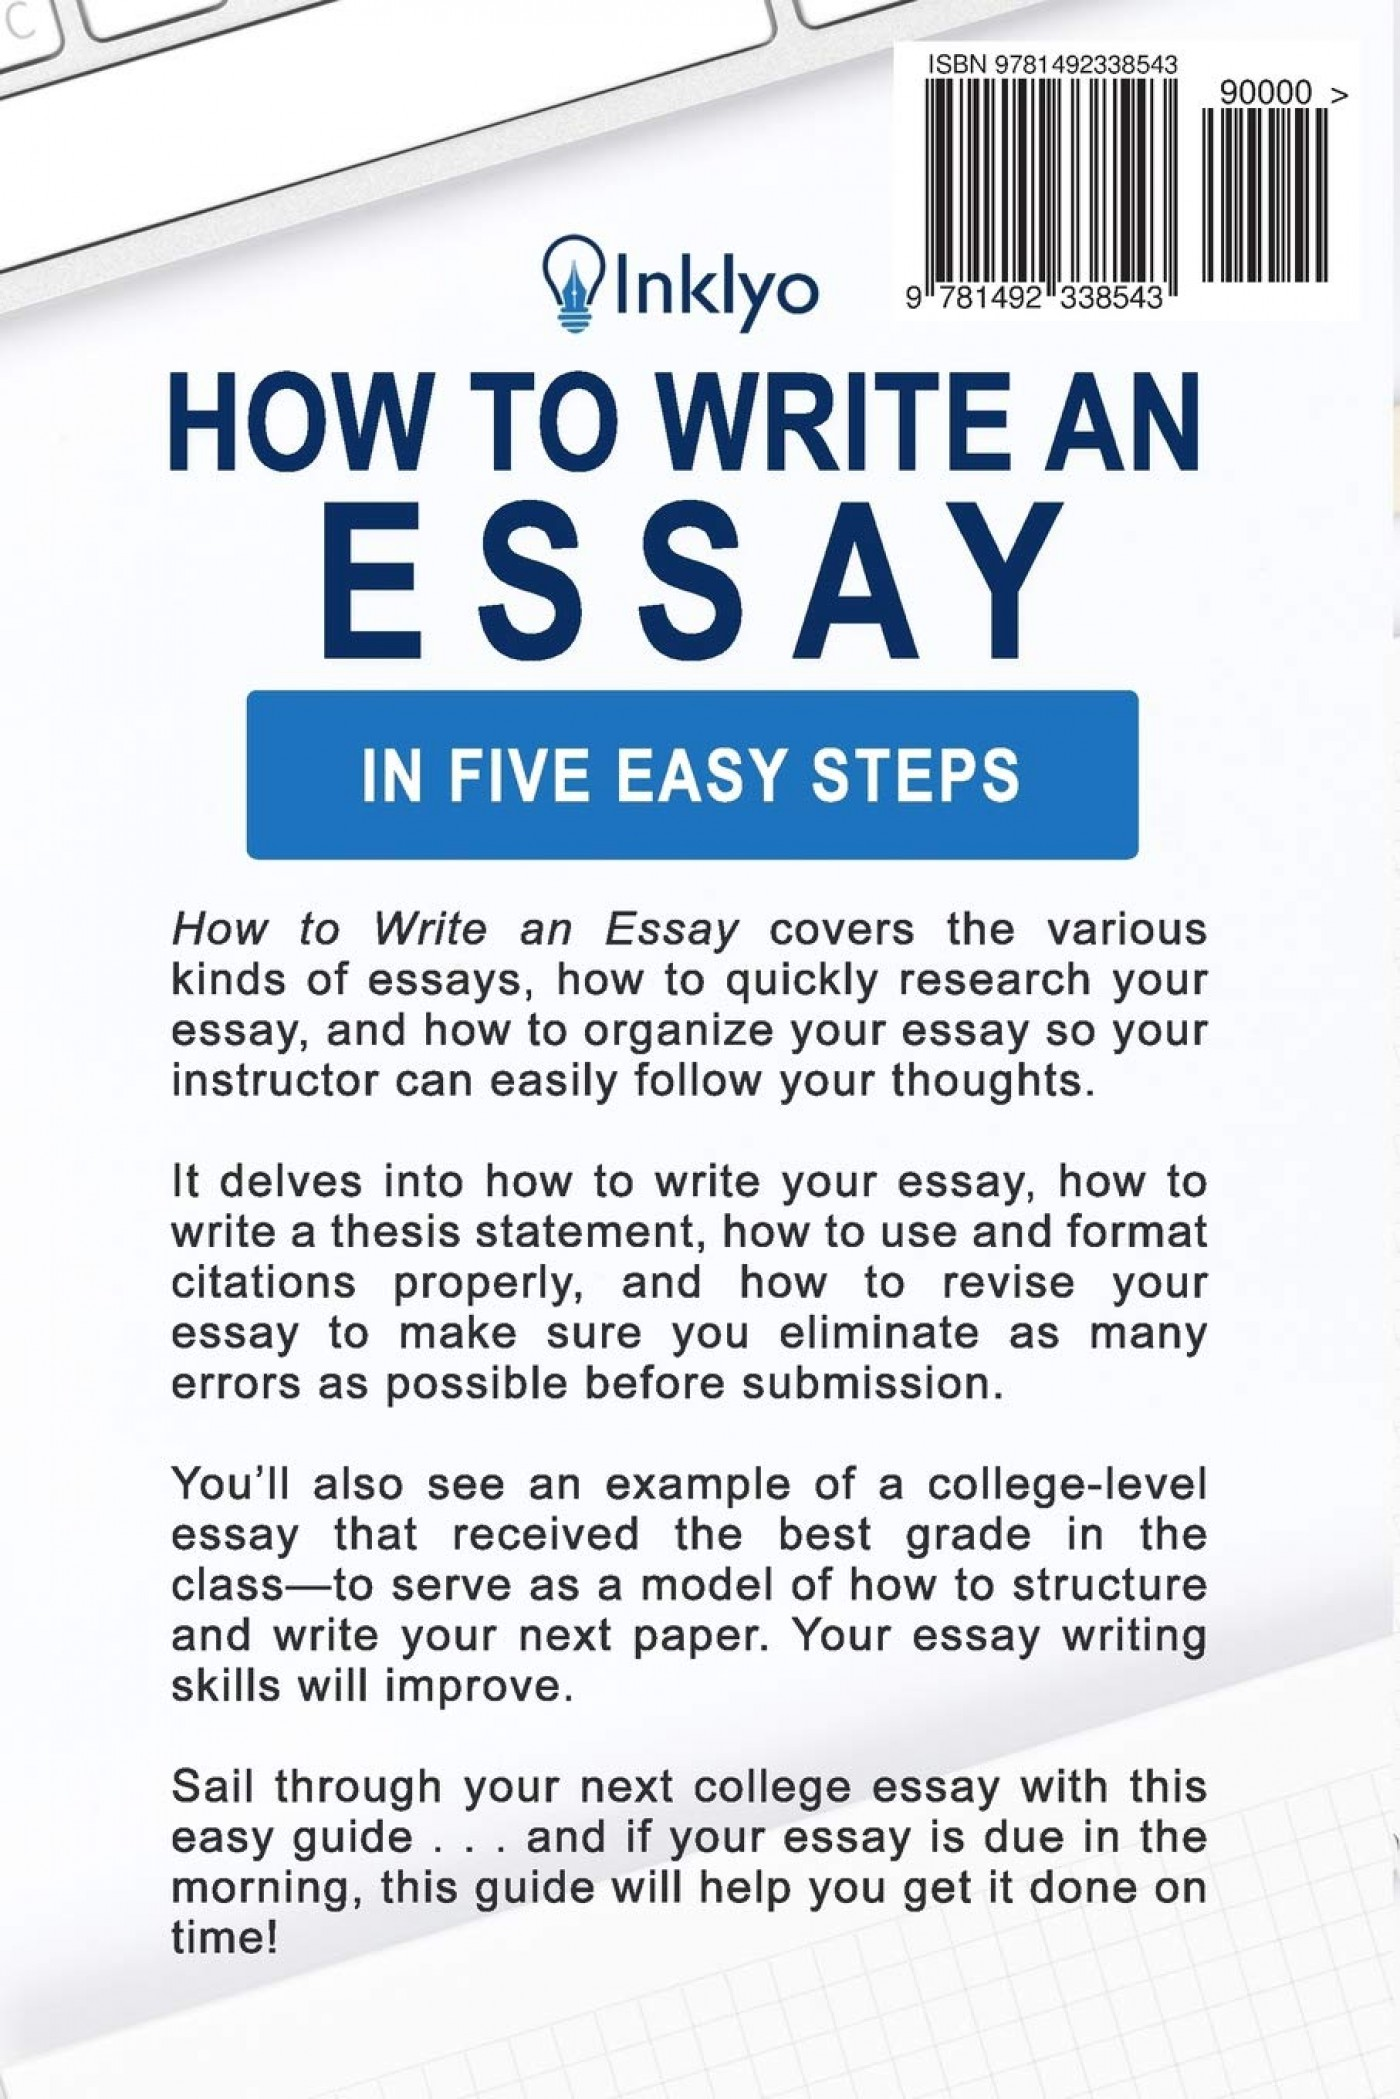 005 Easy Essay Writing Example Marvelous Examples Ielts Tips Task 2 Topics 1400